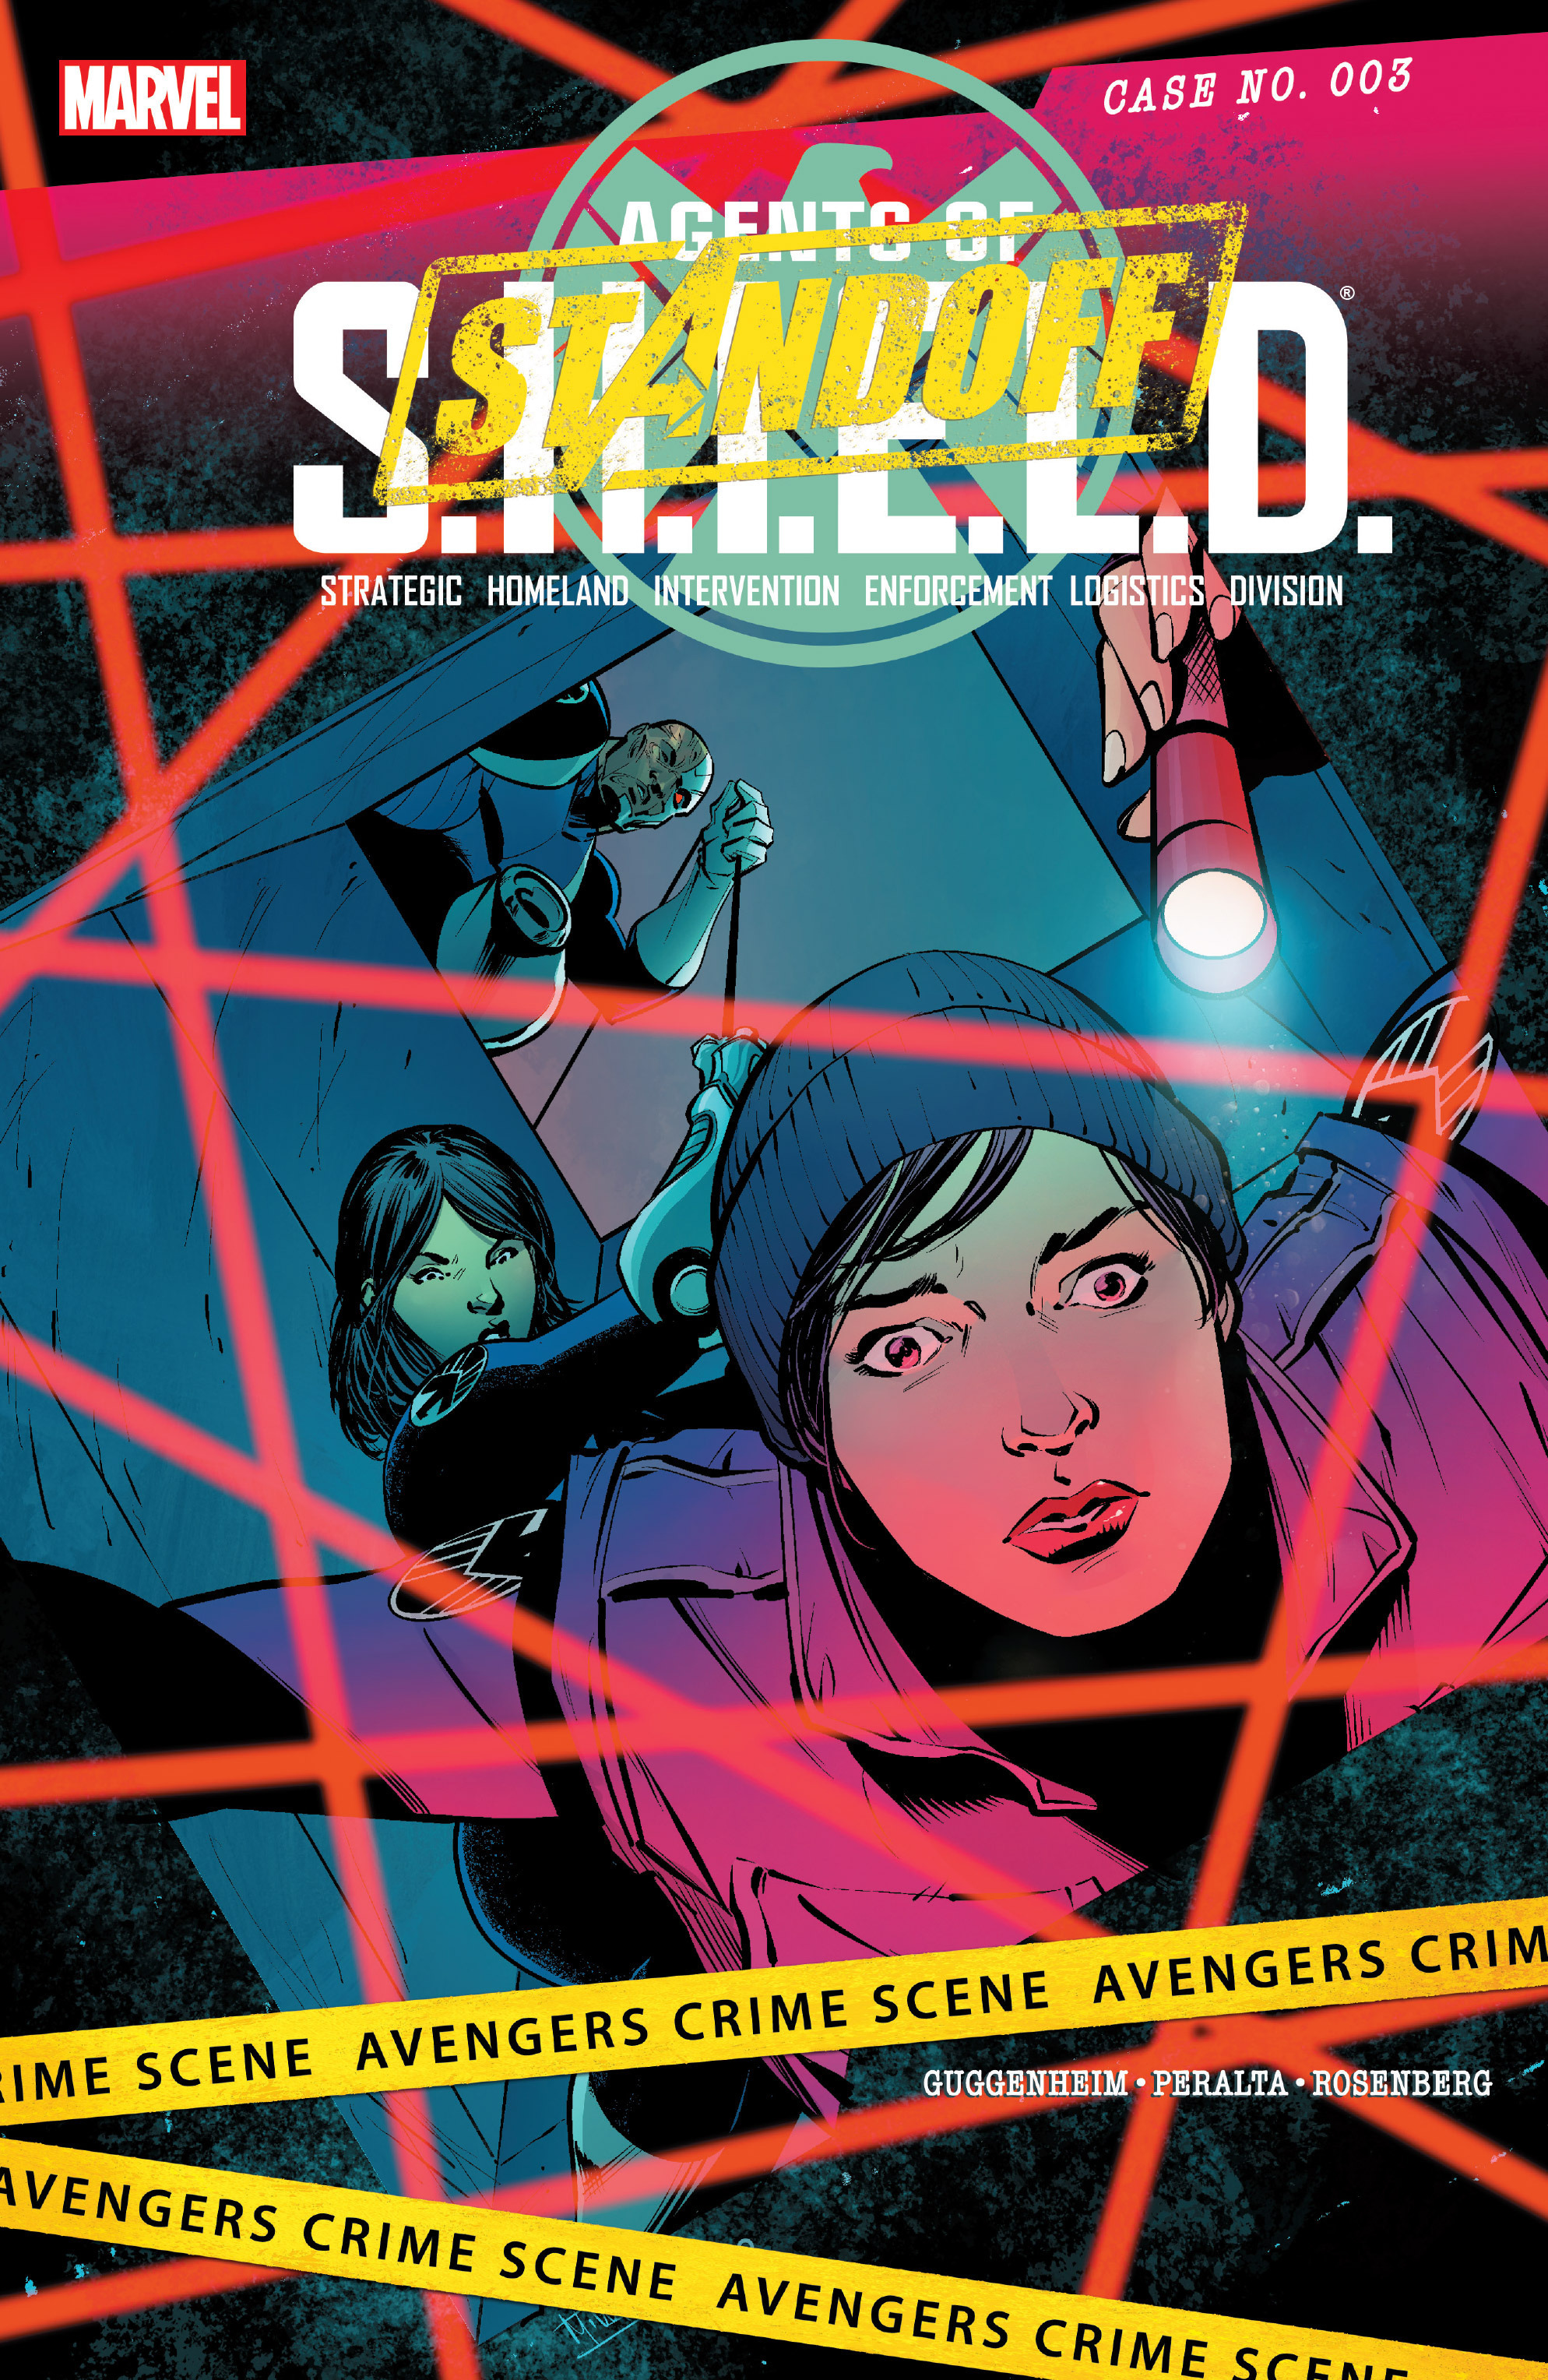 Read online Agents of S.H.I.E.L.D. comic -  Issue #3 - 1